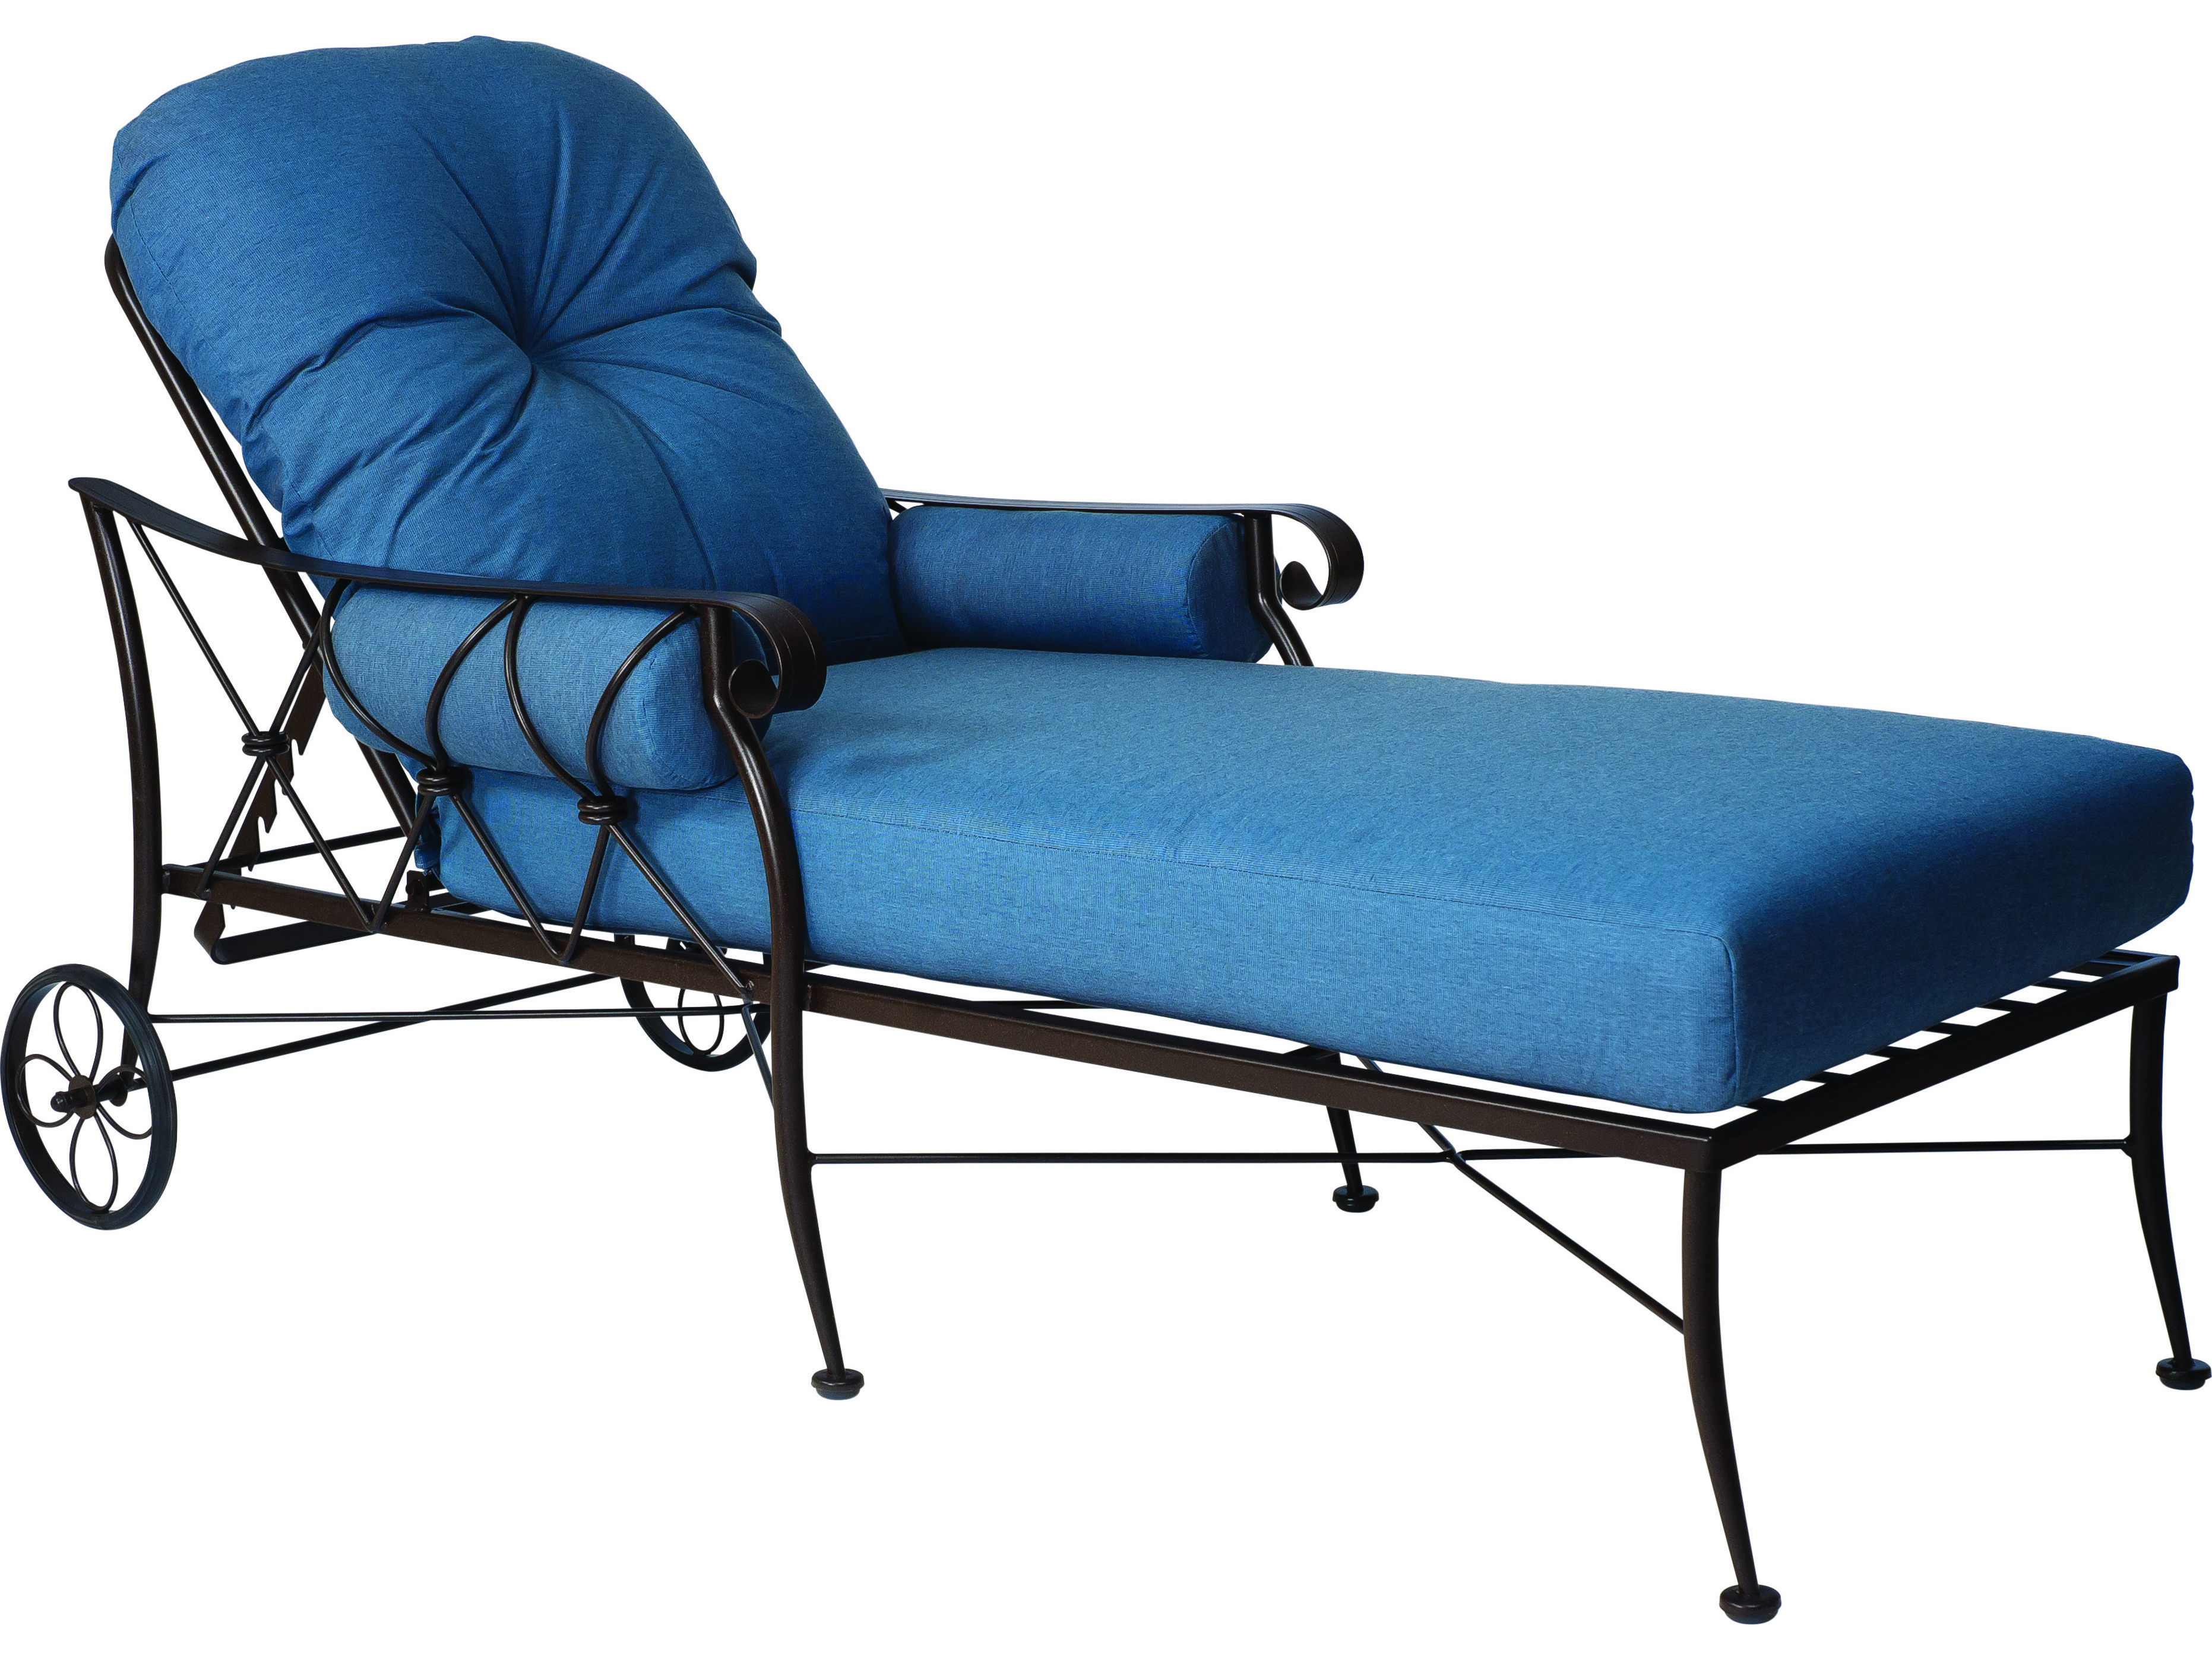 Woodard derby wrought iron cushion adjustable chaise for Chaise lounge construction